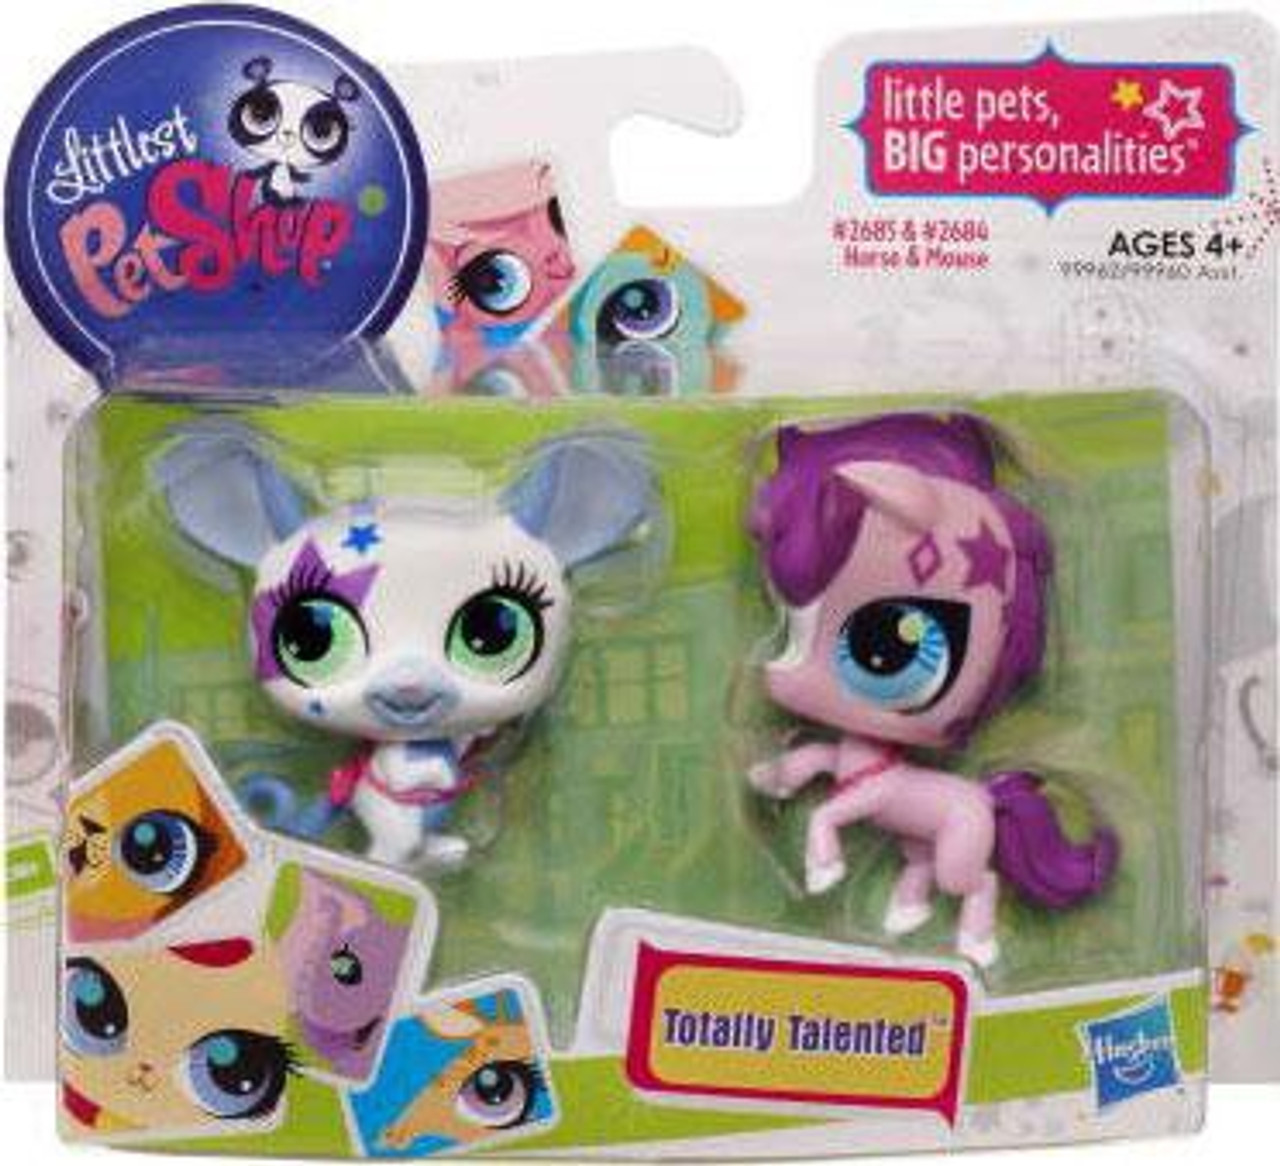 Littlest Pet Shop Totally Talented Pets Mouse & Horse Figure 2-Pack #2685, 2686